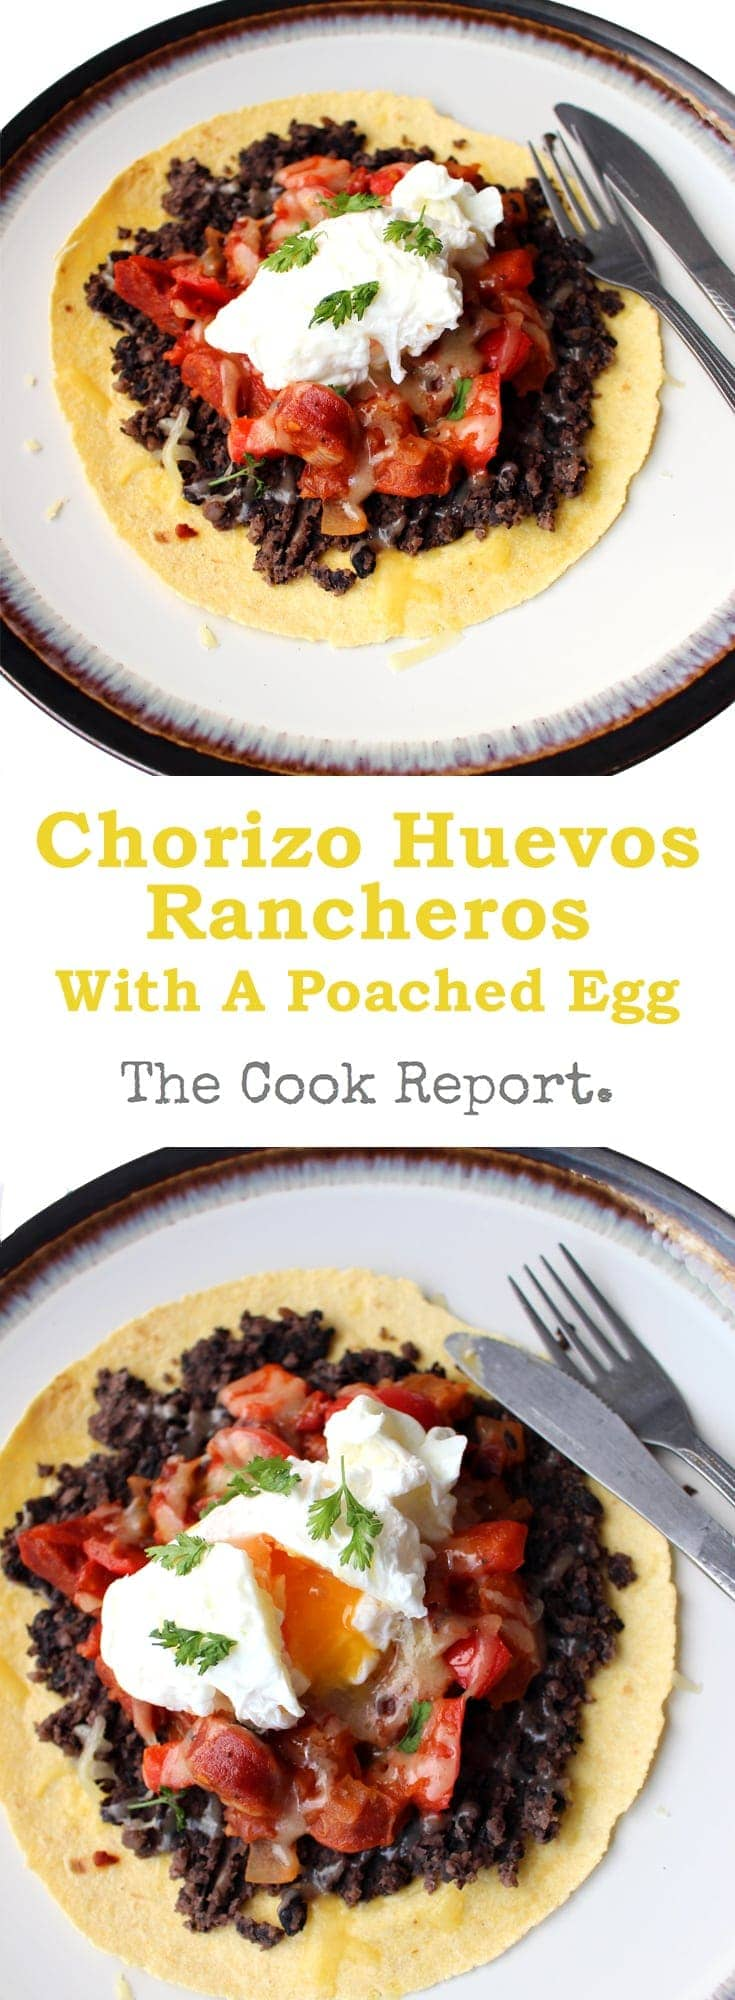 This chorizo huevos rancheros is a super easy breakfast which still feels like such a treat! It includes a super quick refried bean substitute and loads of flavour from the chorizo.